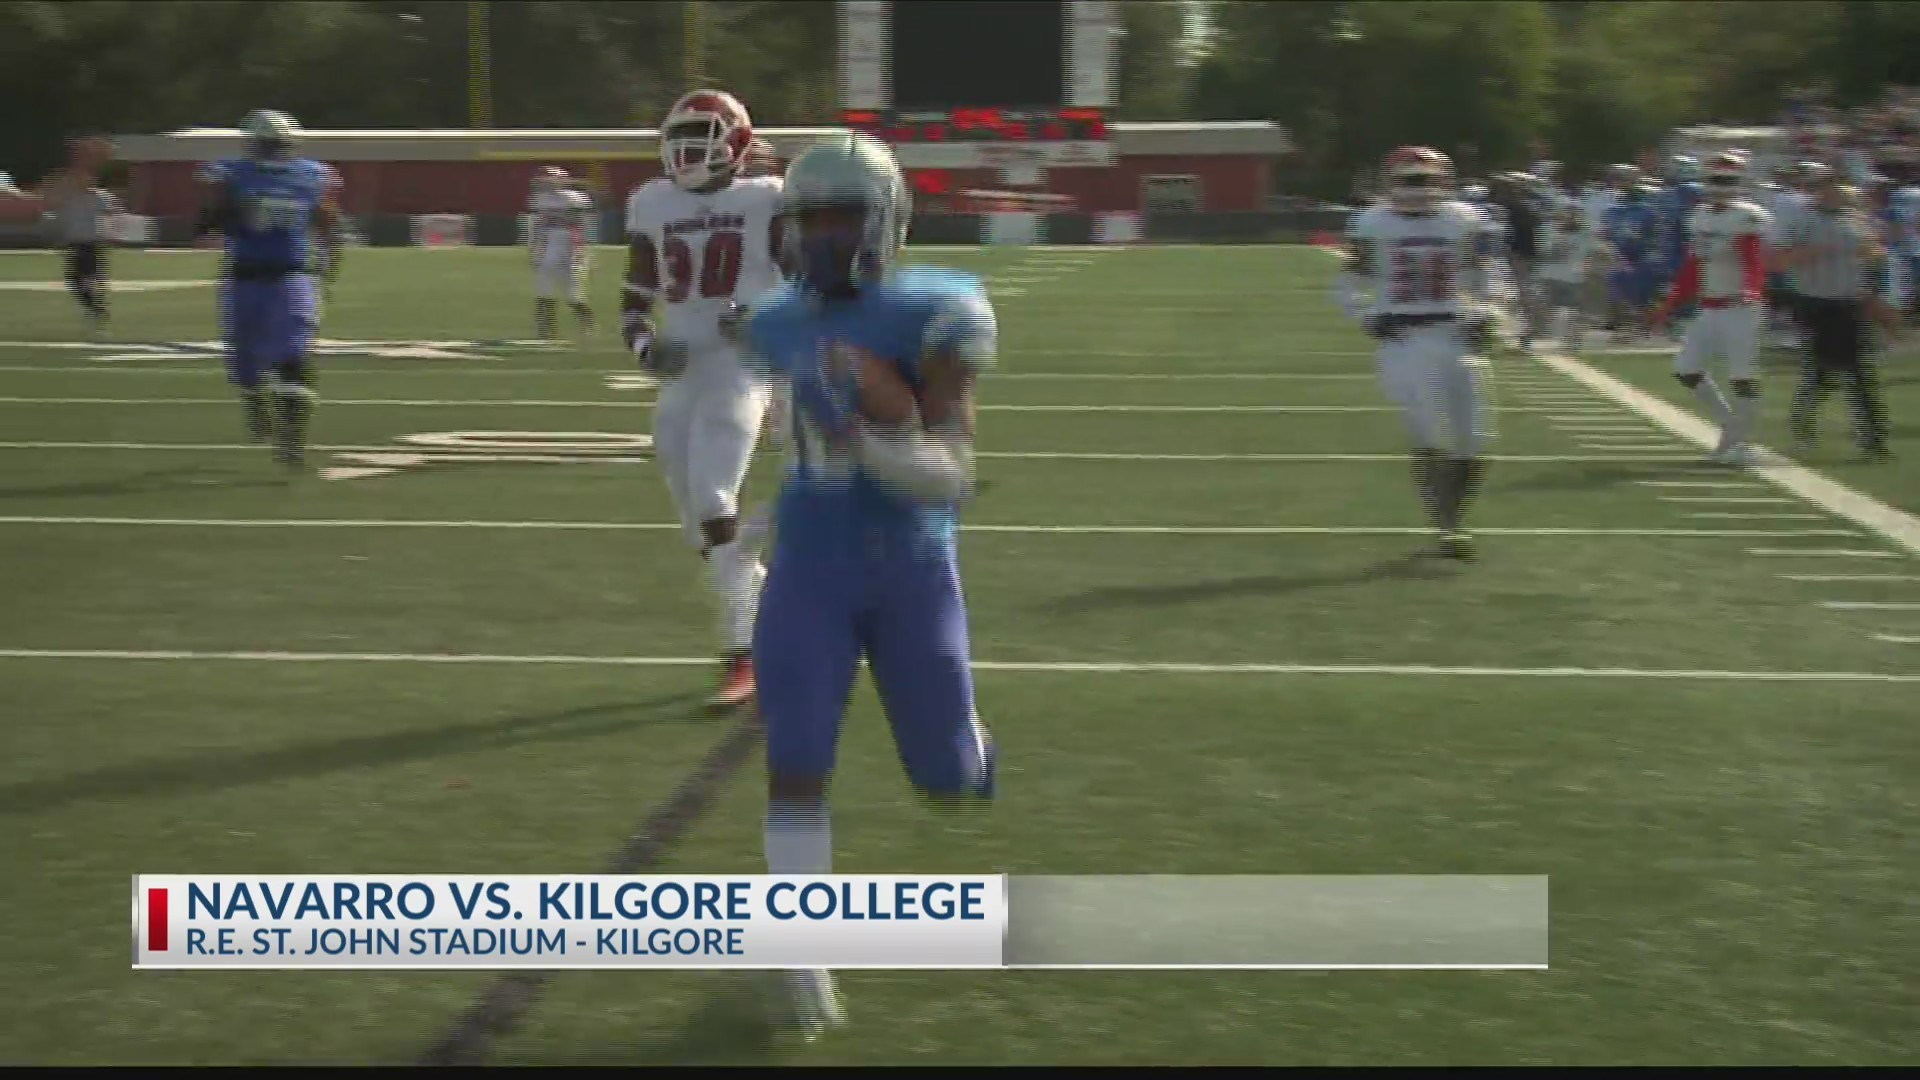 Kilgore_College_beats_Navarro_45_14_in_S_0_20181104035005